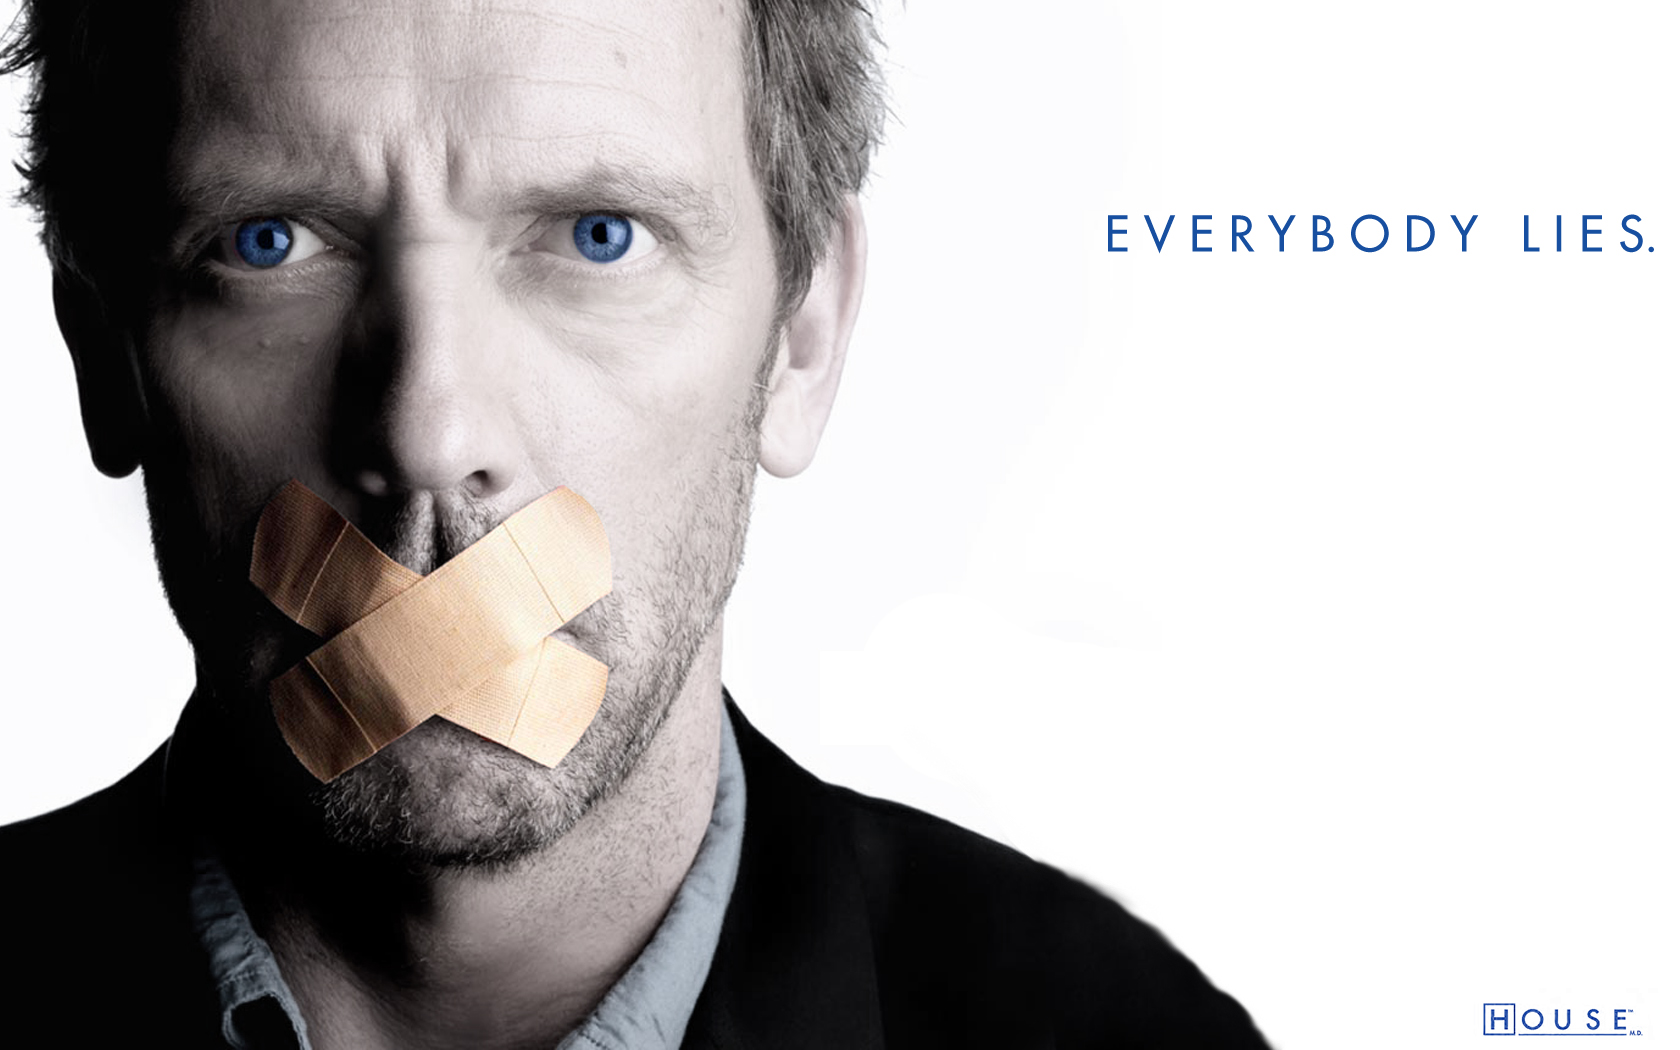 everybody-lies-wallpaper1.jpg